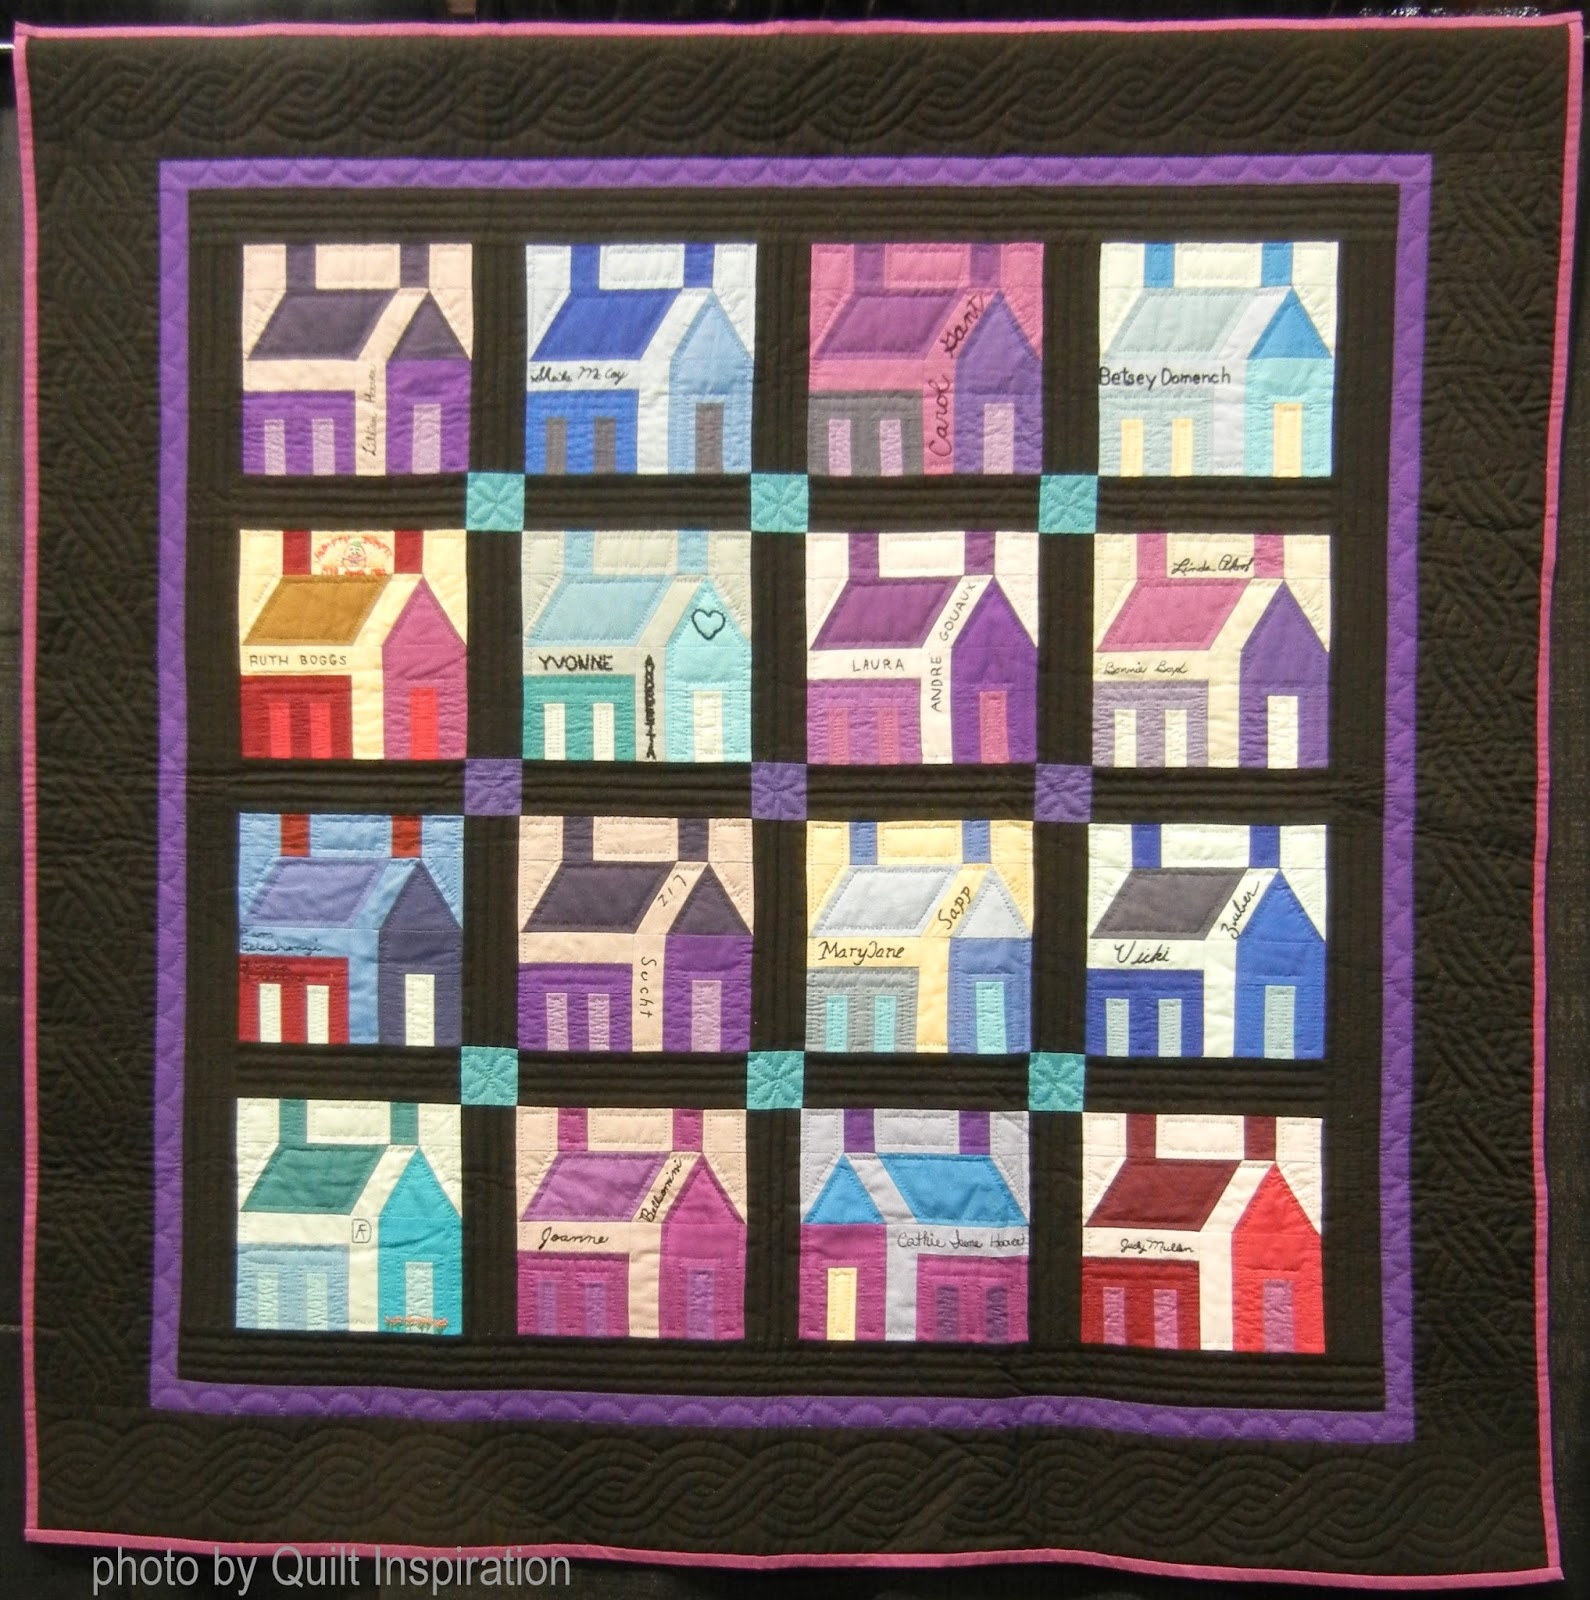 An Homage To Amish Quilts Quilt Inspiration Bloglovin